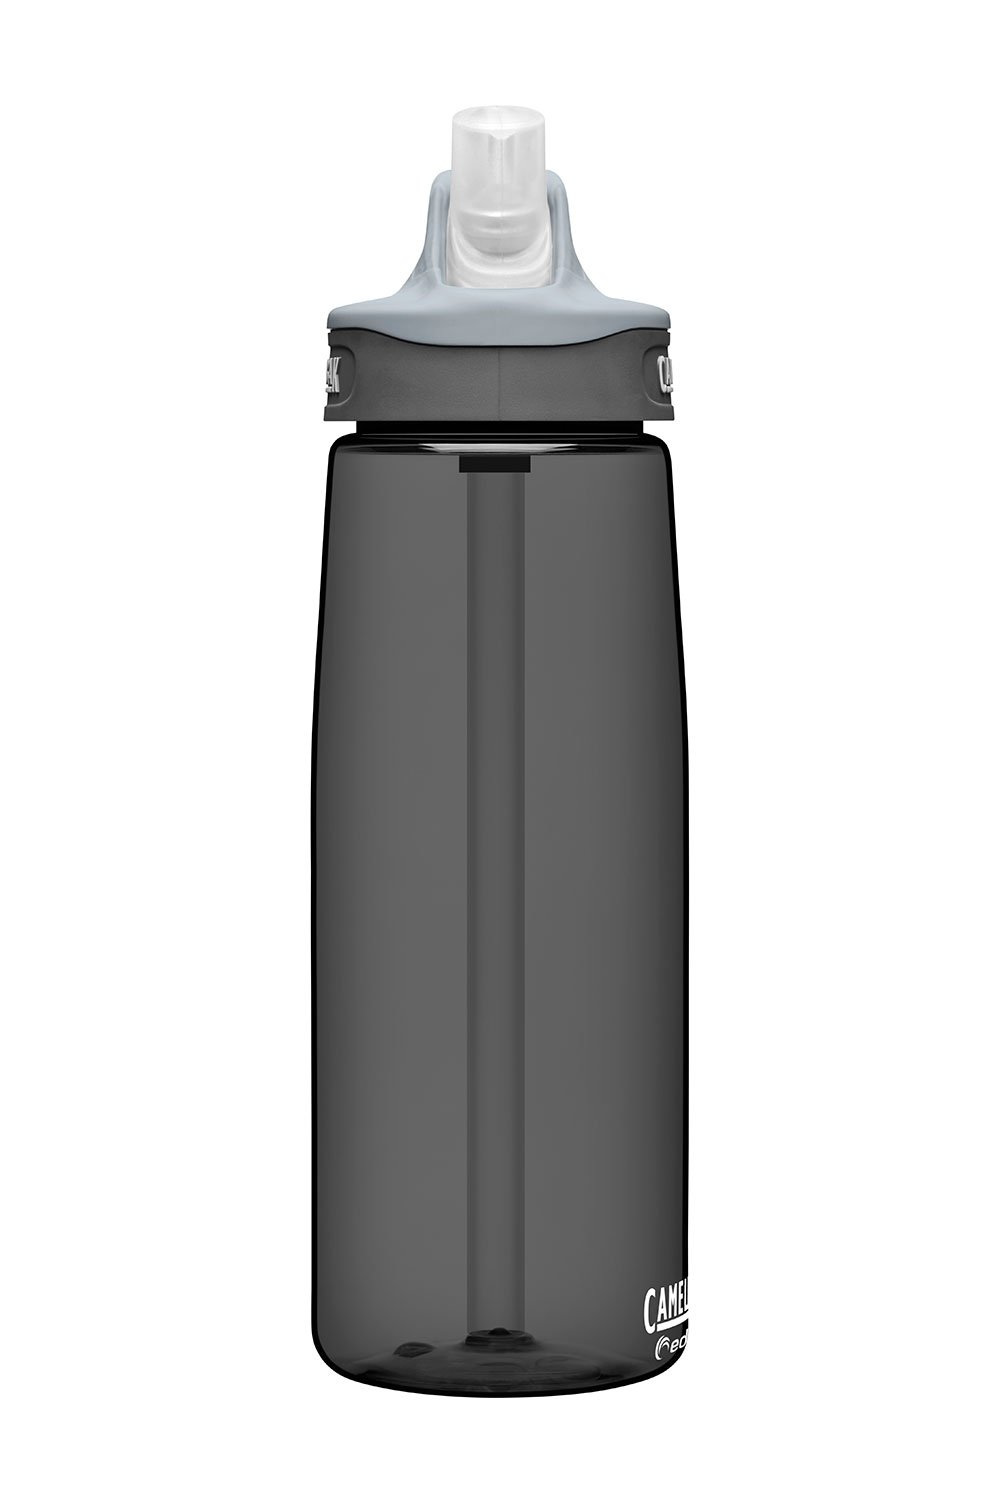 Camelbak Eddy Bottle (0.75-Liter/24-Ounce,Charcoal)